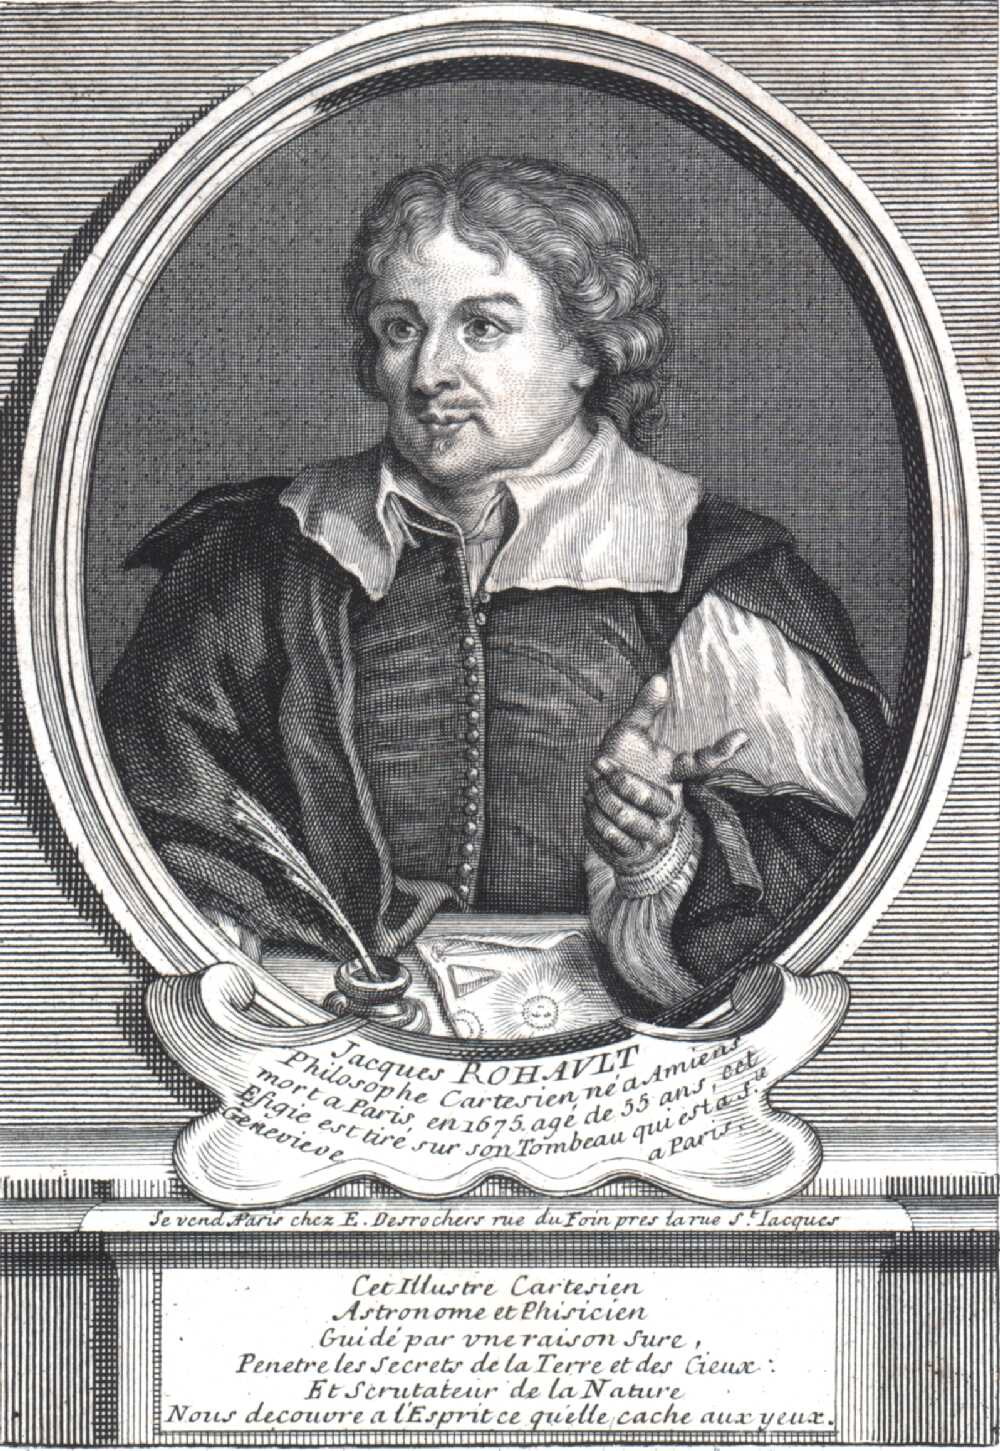 Engraving of French physicist Jacques Rohault